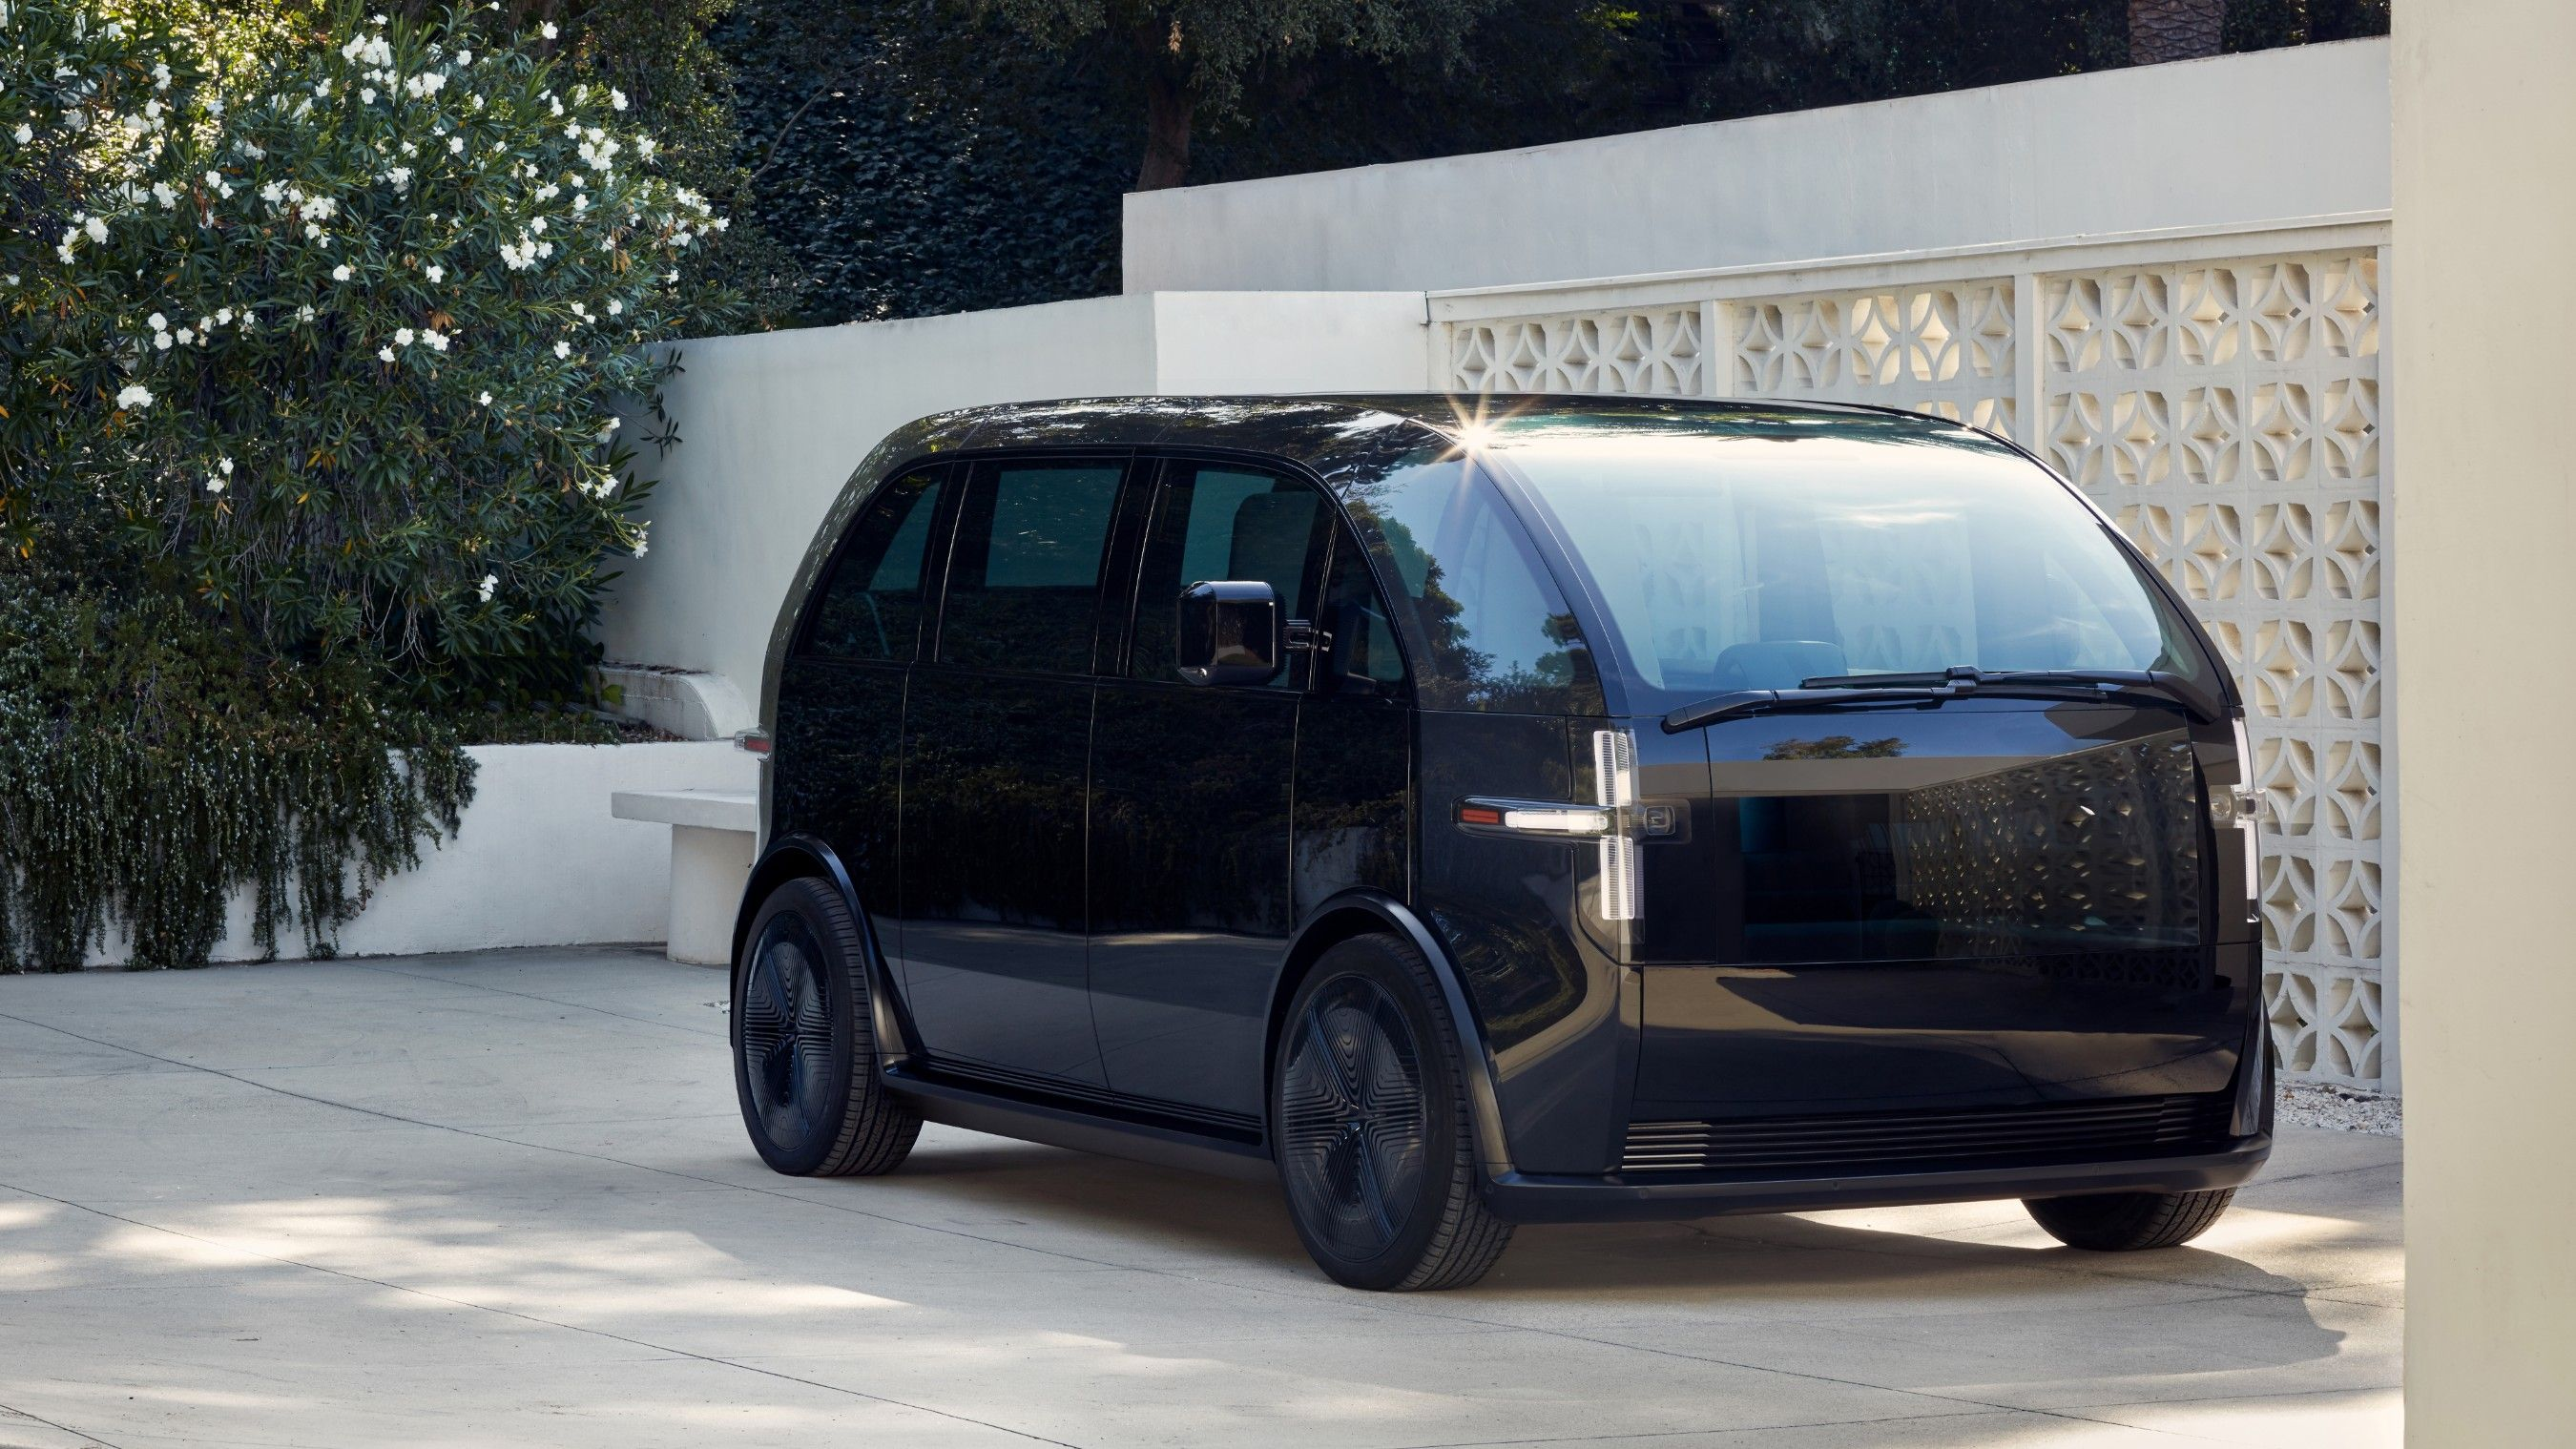 Canoo Is a Microbus-Style Electric Vehicle You Can Subscribe to